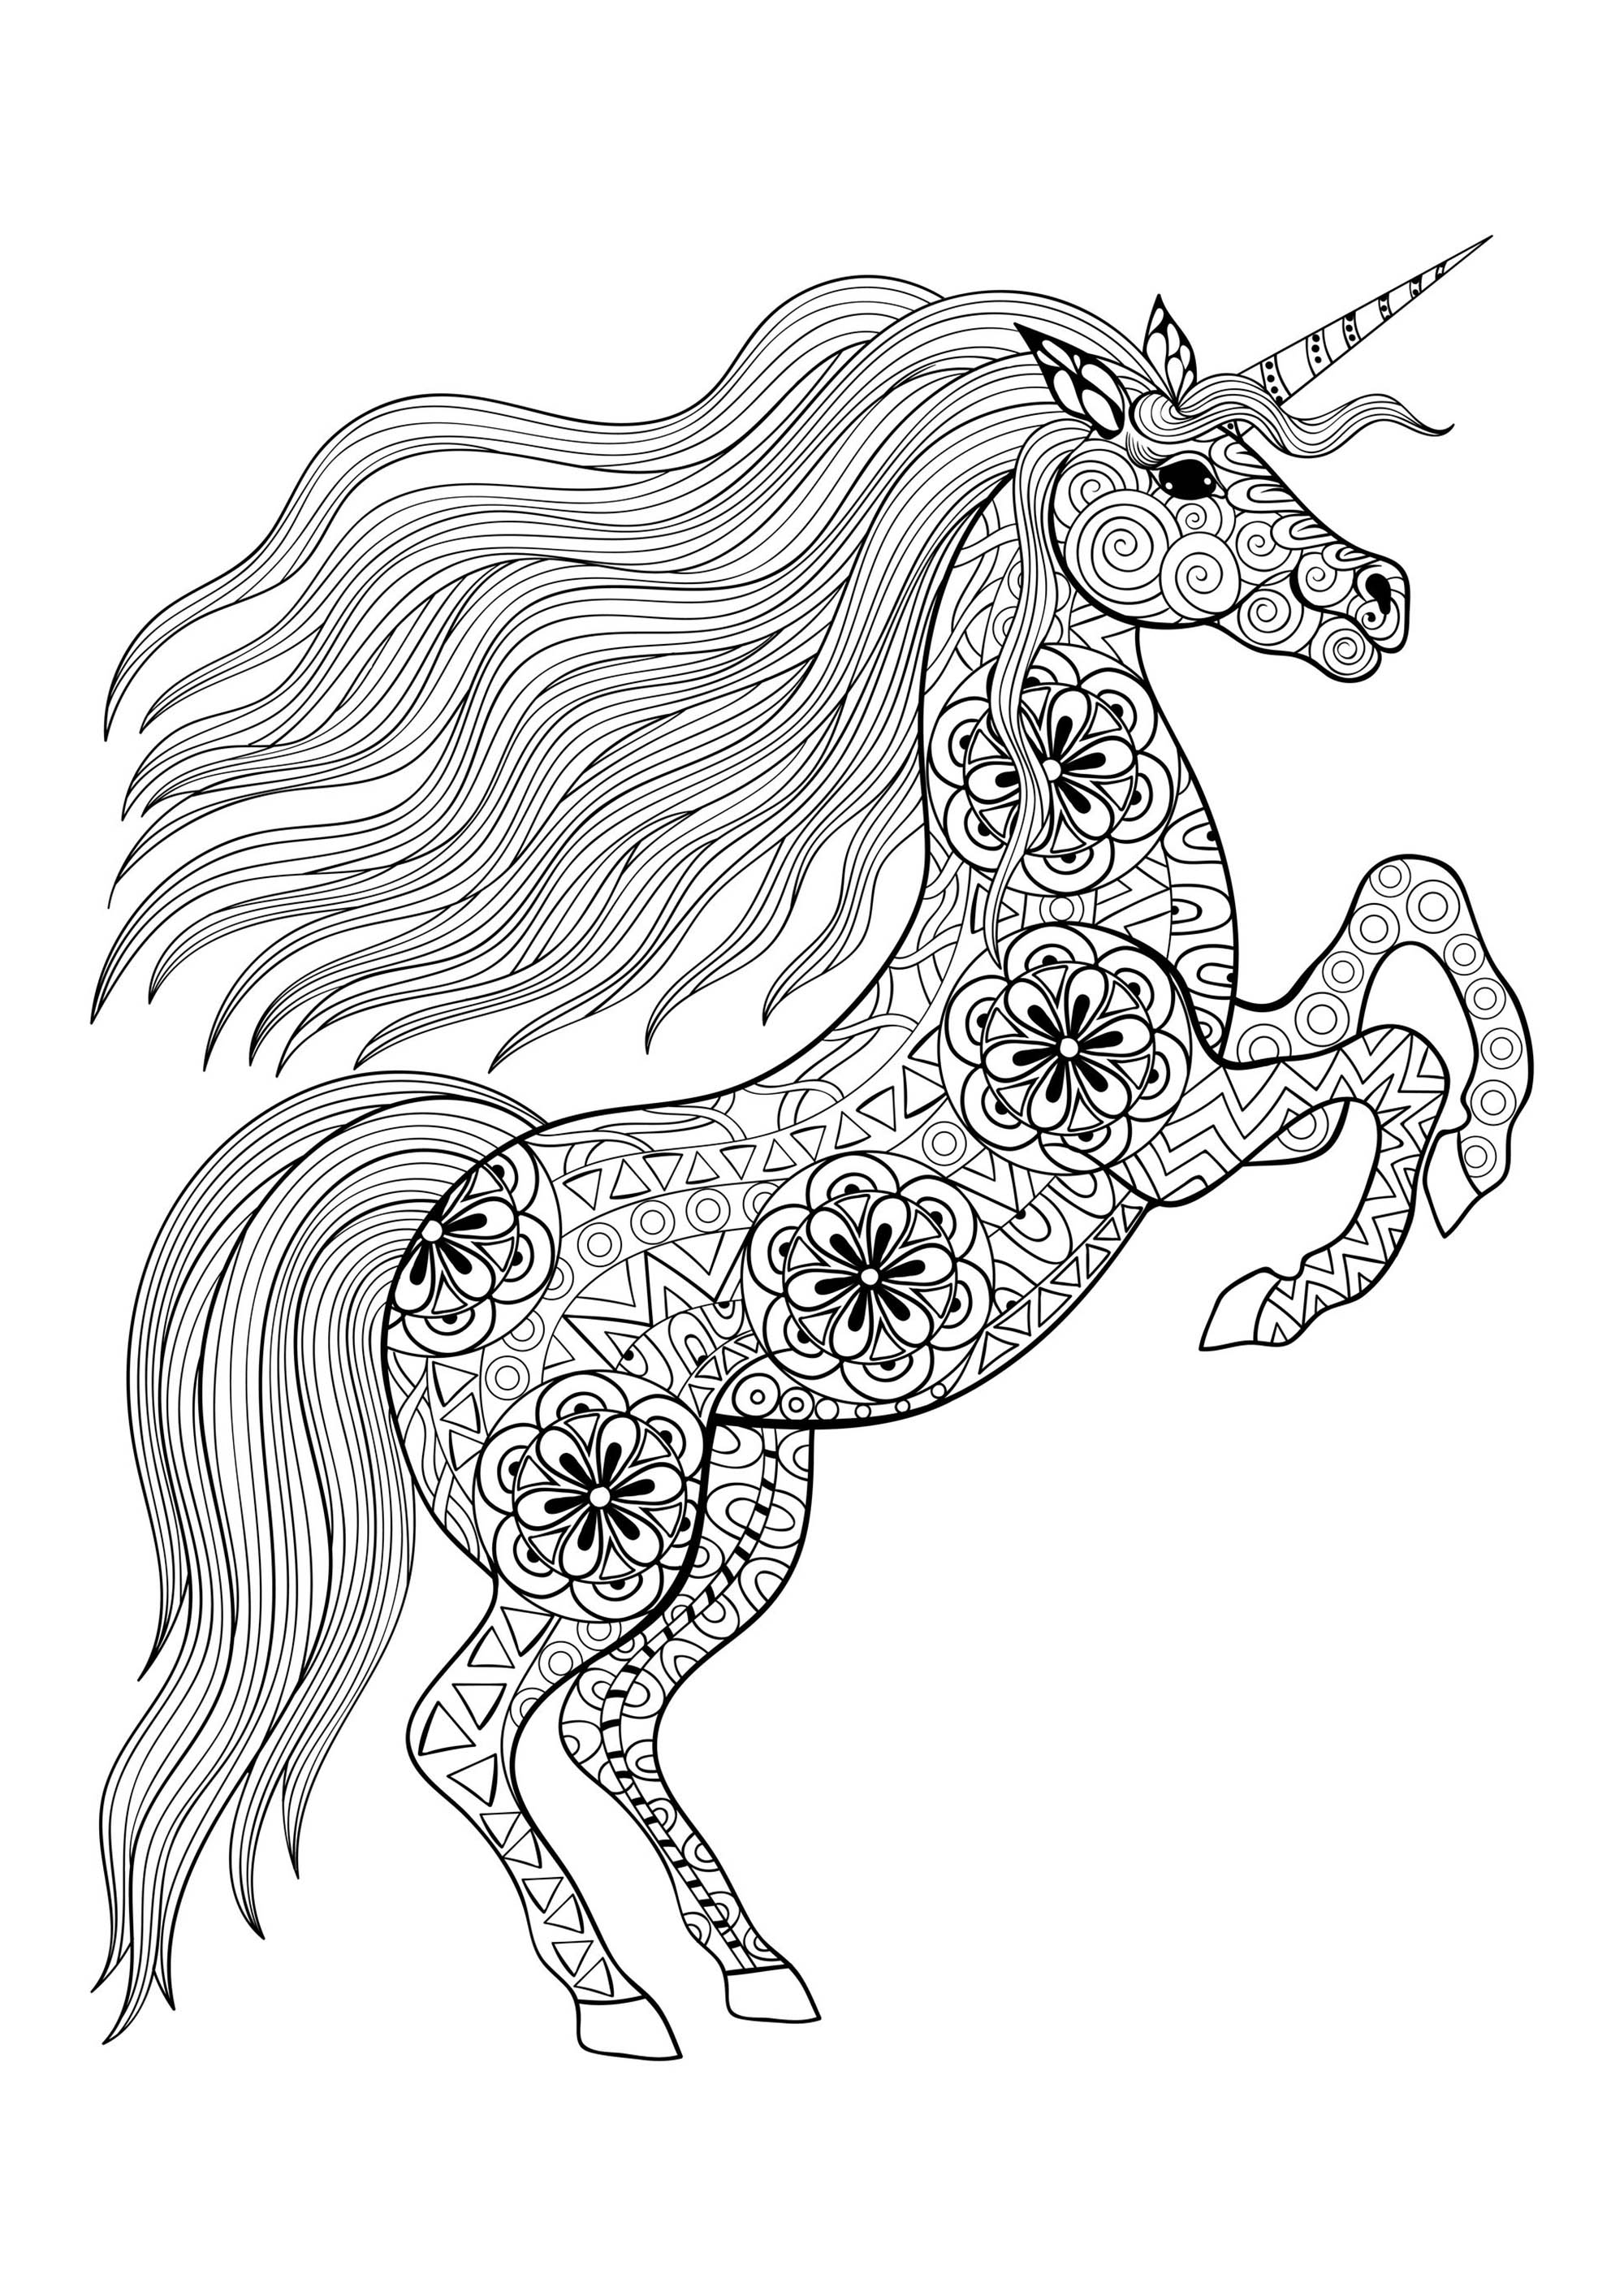 Despicable Me Unicorn Coloring Pages to Print - Get Coloring Pages | 2827x2000